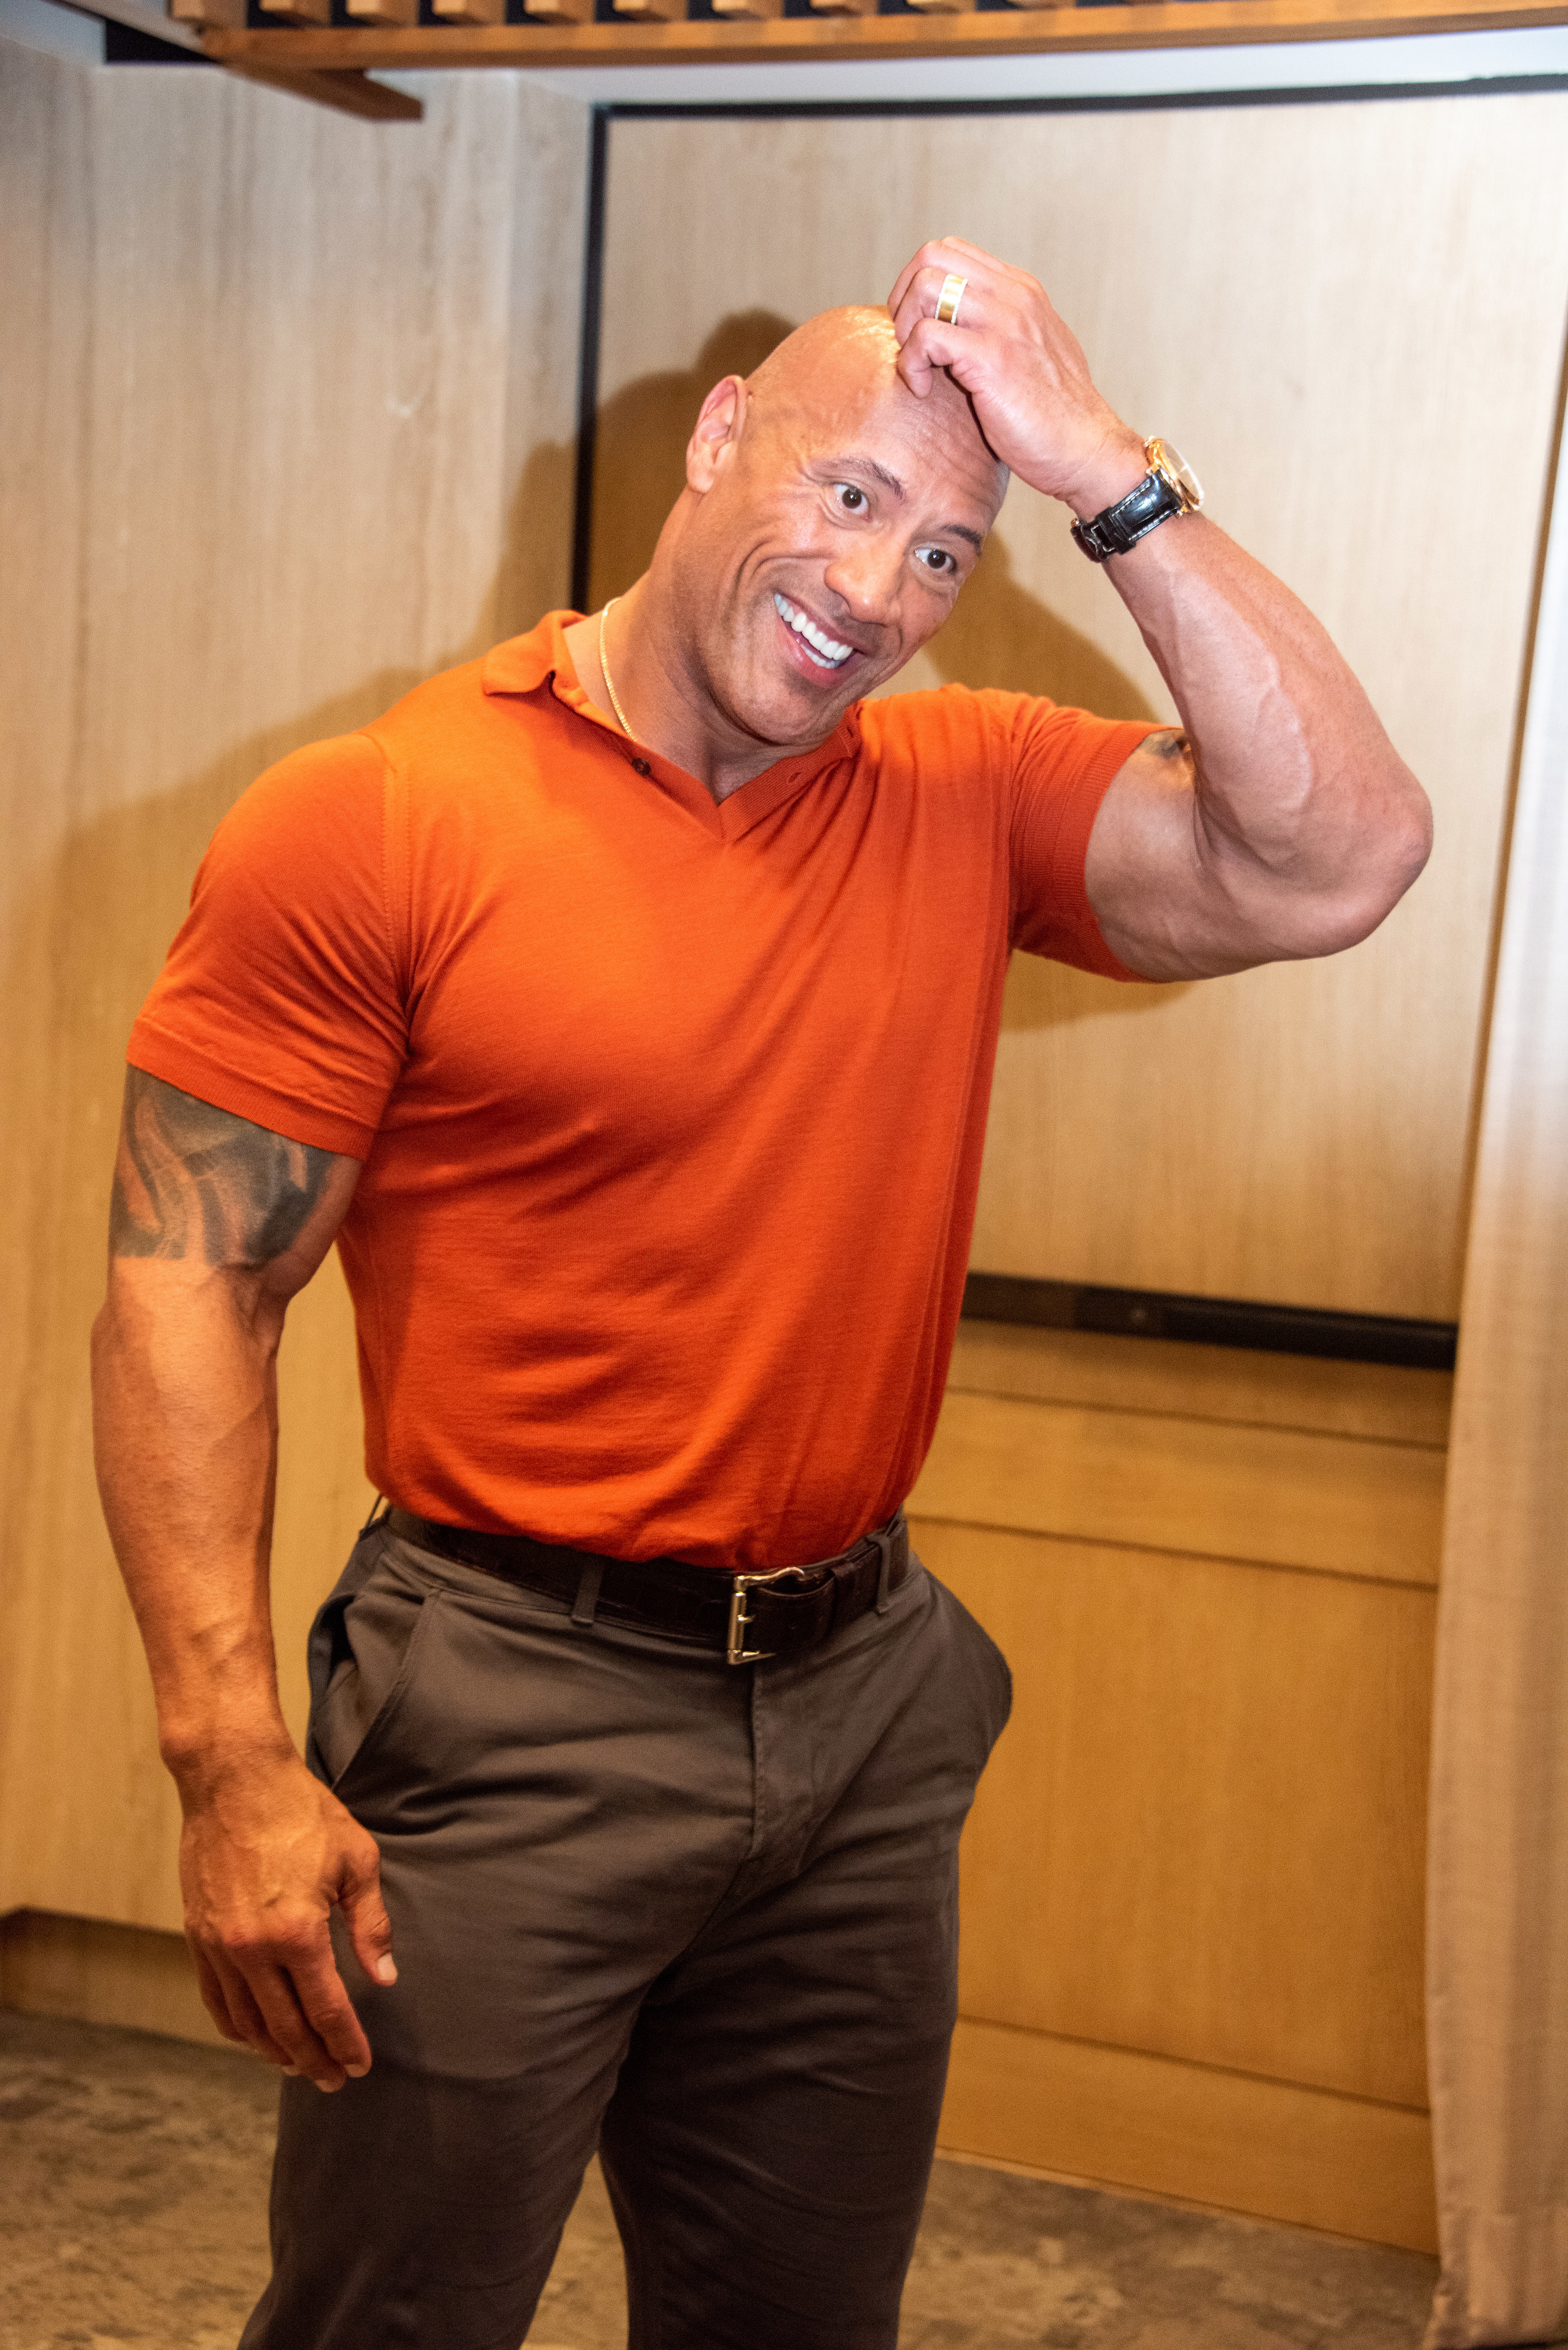 The Rock wearing a T-shirt and smiling and scratching his head